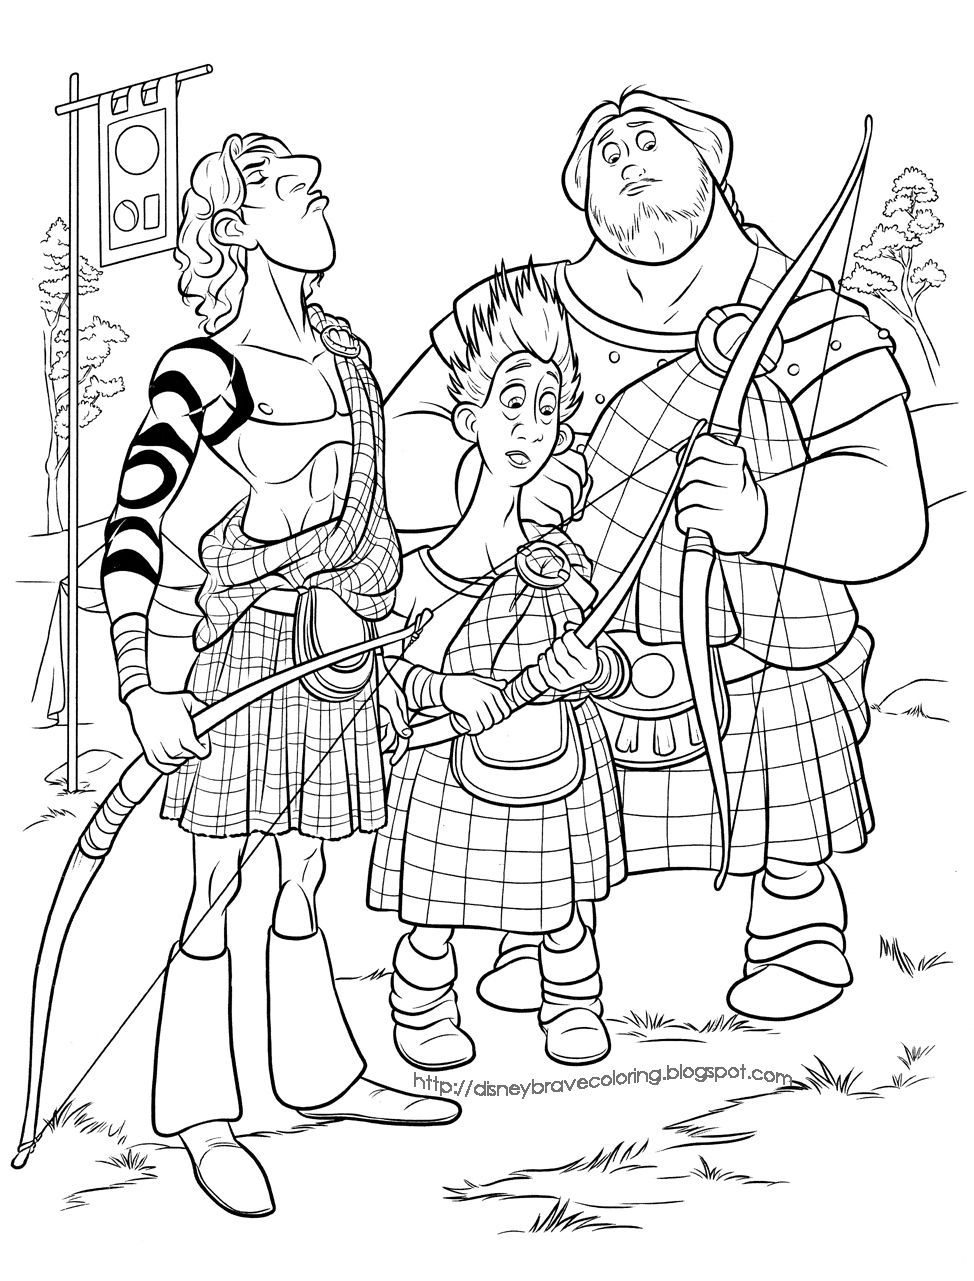 Brave Merida Coloring Pages Cartoon Coloring Pages Disney Coloring Pages Coloring Books